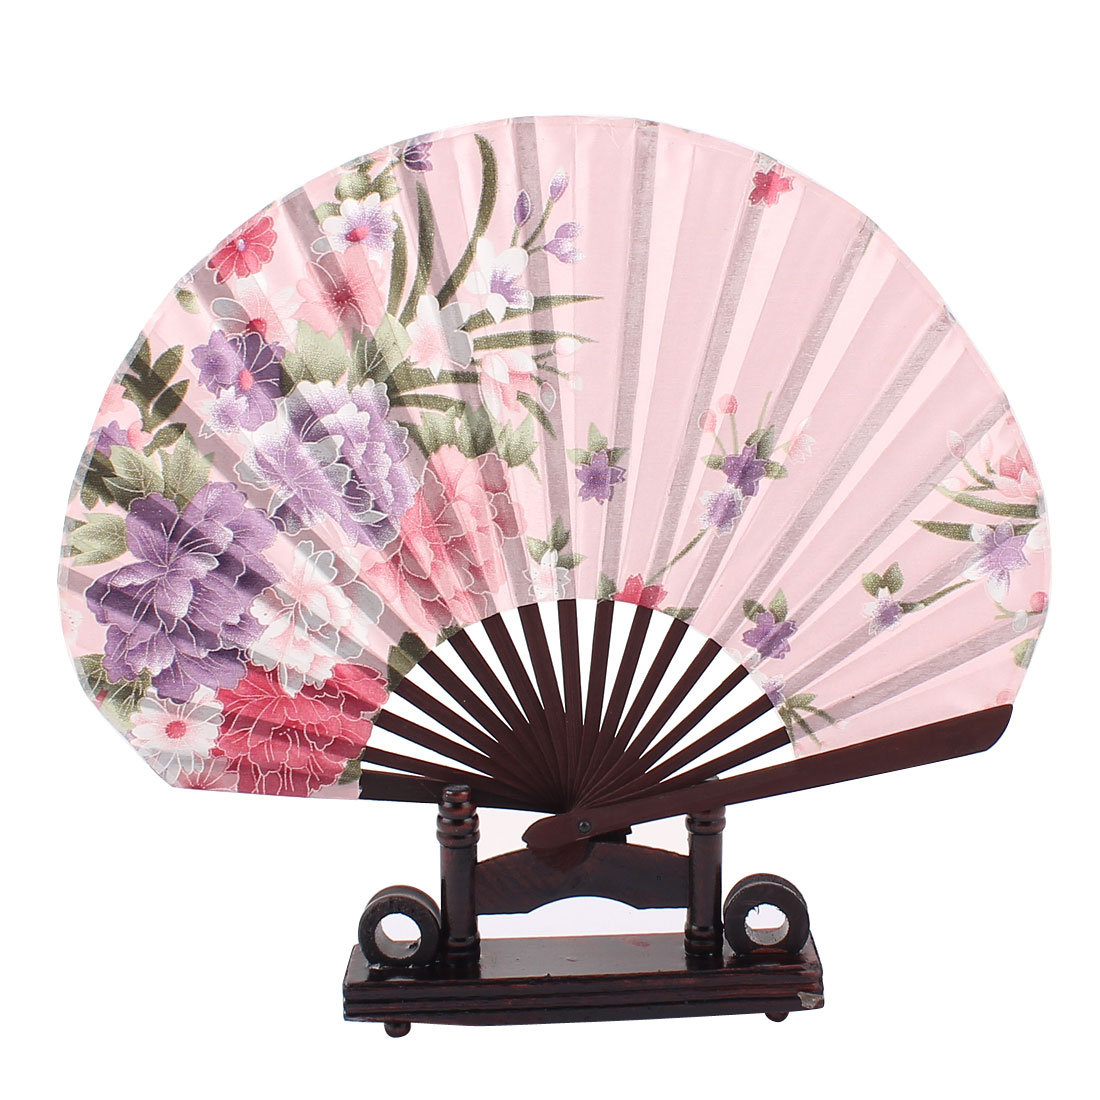 Chinese Party Favor Peony Print Wood Folding Hand Fan Coffee Color Pink w Holder